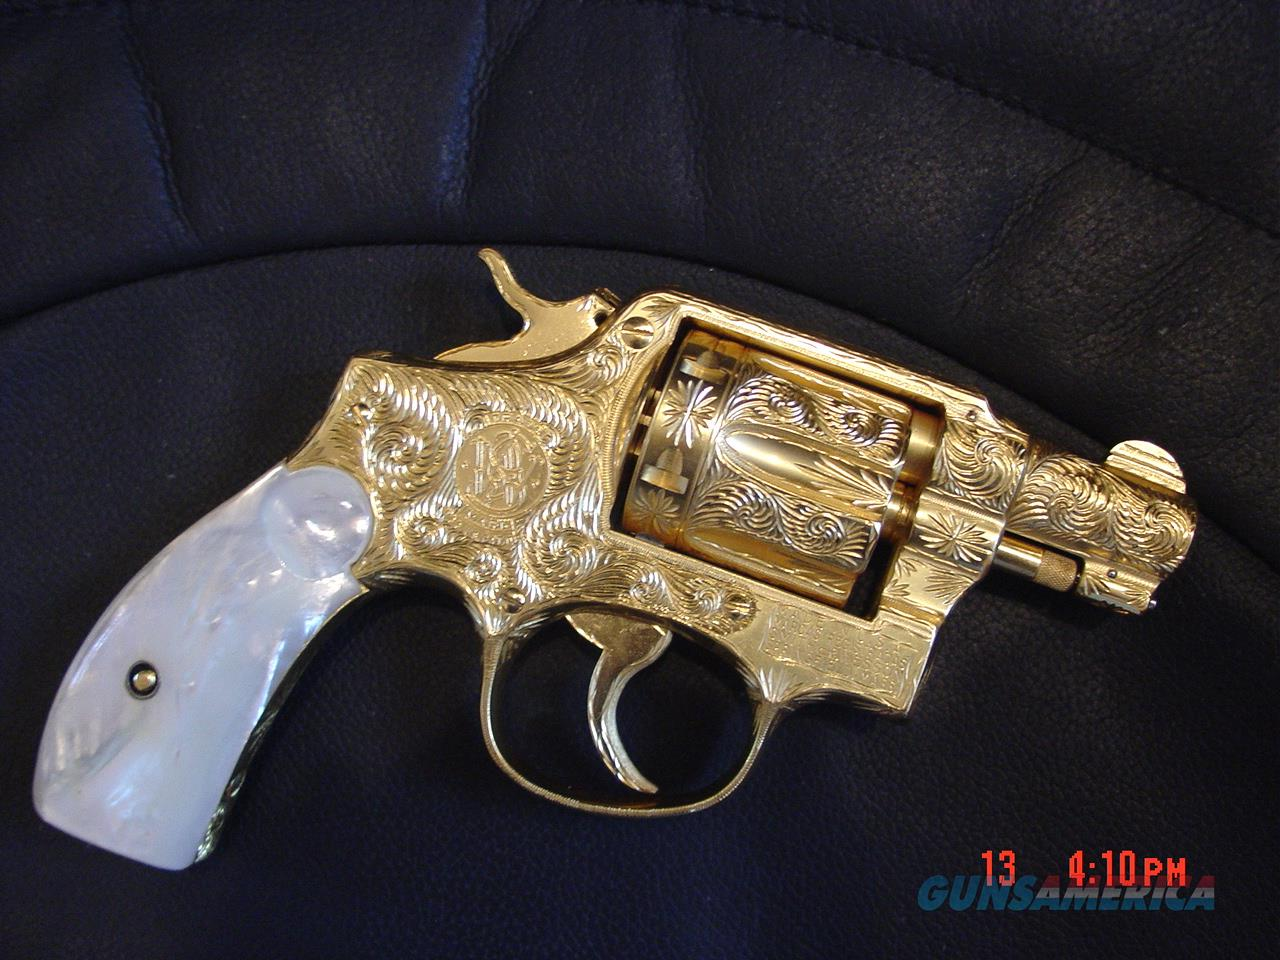 "Smith & Wesson Pre model 10,2"",38SPL,24K gold plated,fully engraved by Flannery Engraving,REAL Pearl grips, late 40's to early 50's, a 1 of a kind masterpiece !!  Guns > Pistols > Smith & Wesson Revolvers > Model 10"